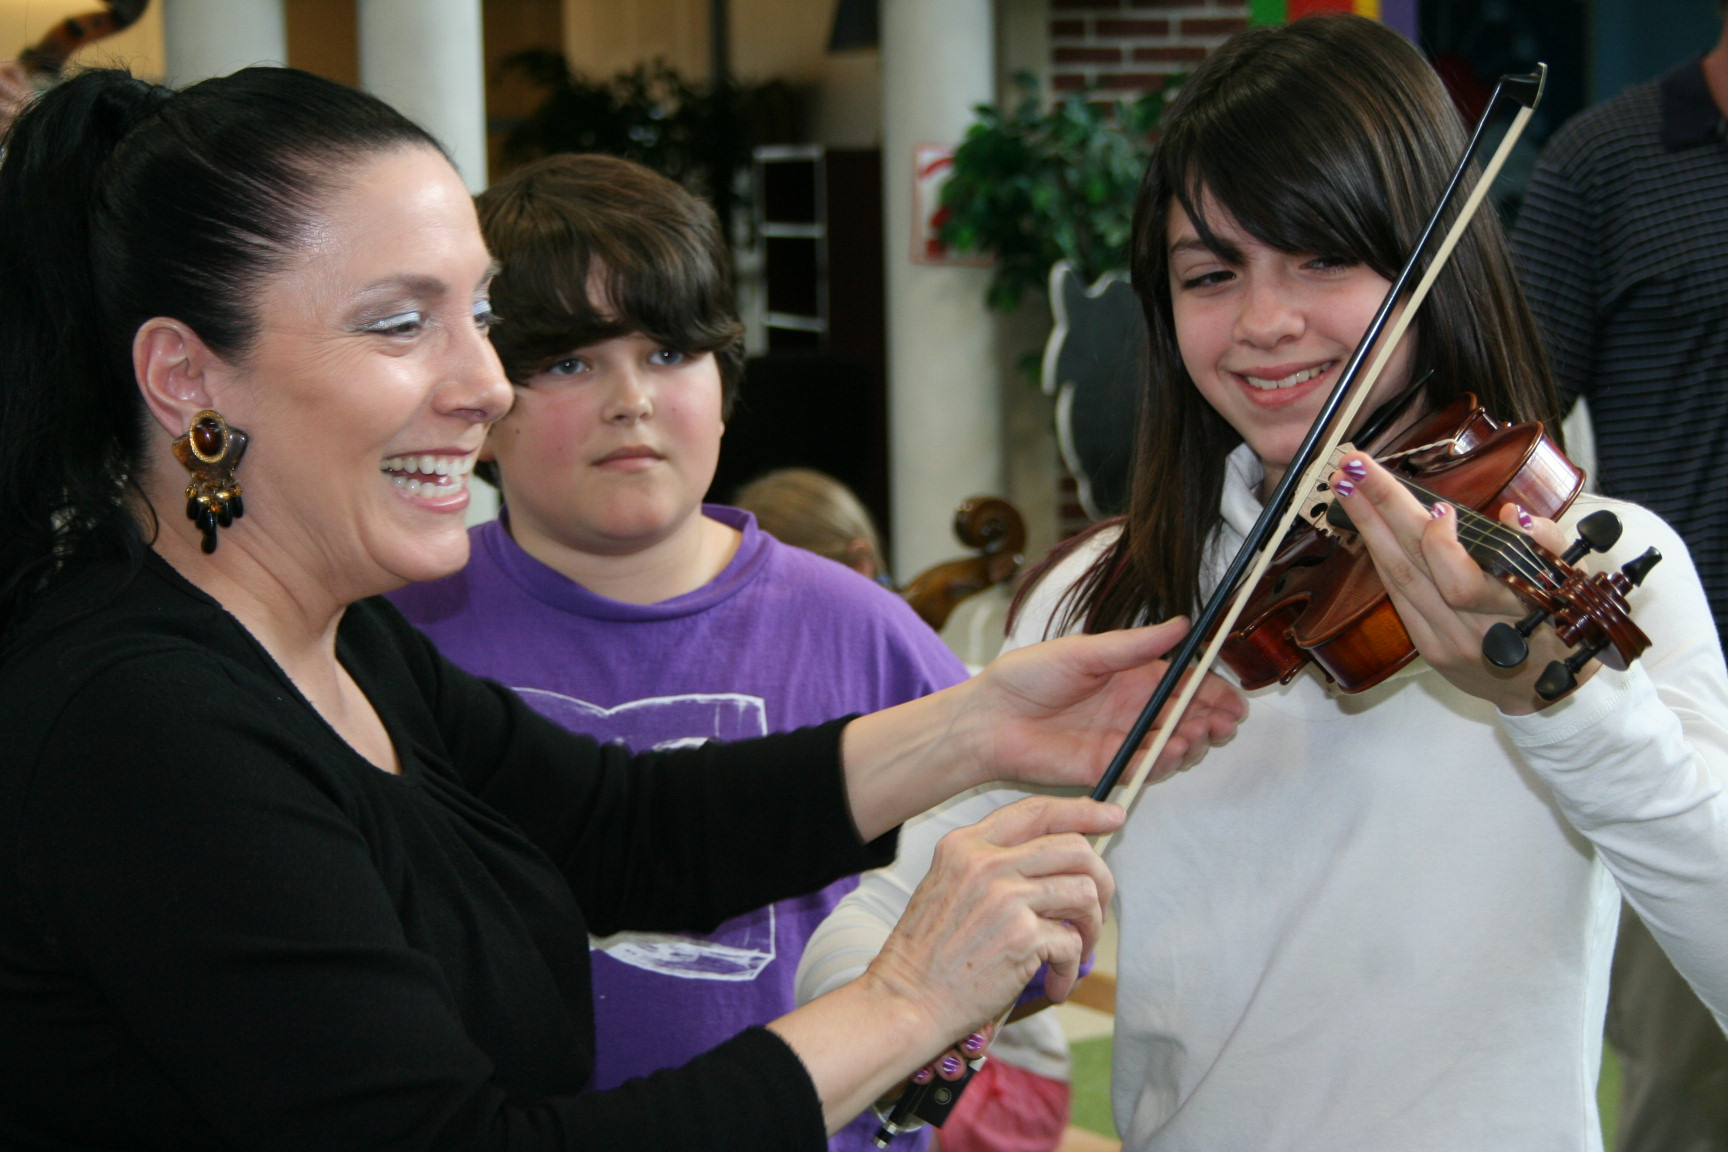 family-concert-instrument-petting-zoo_262810